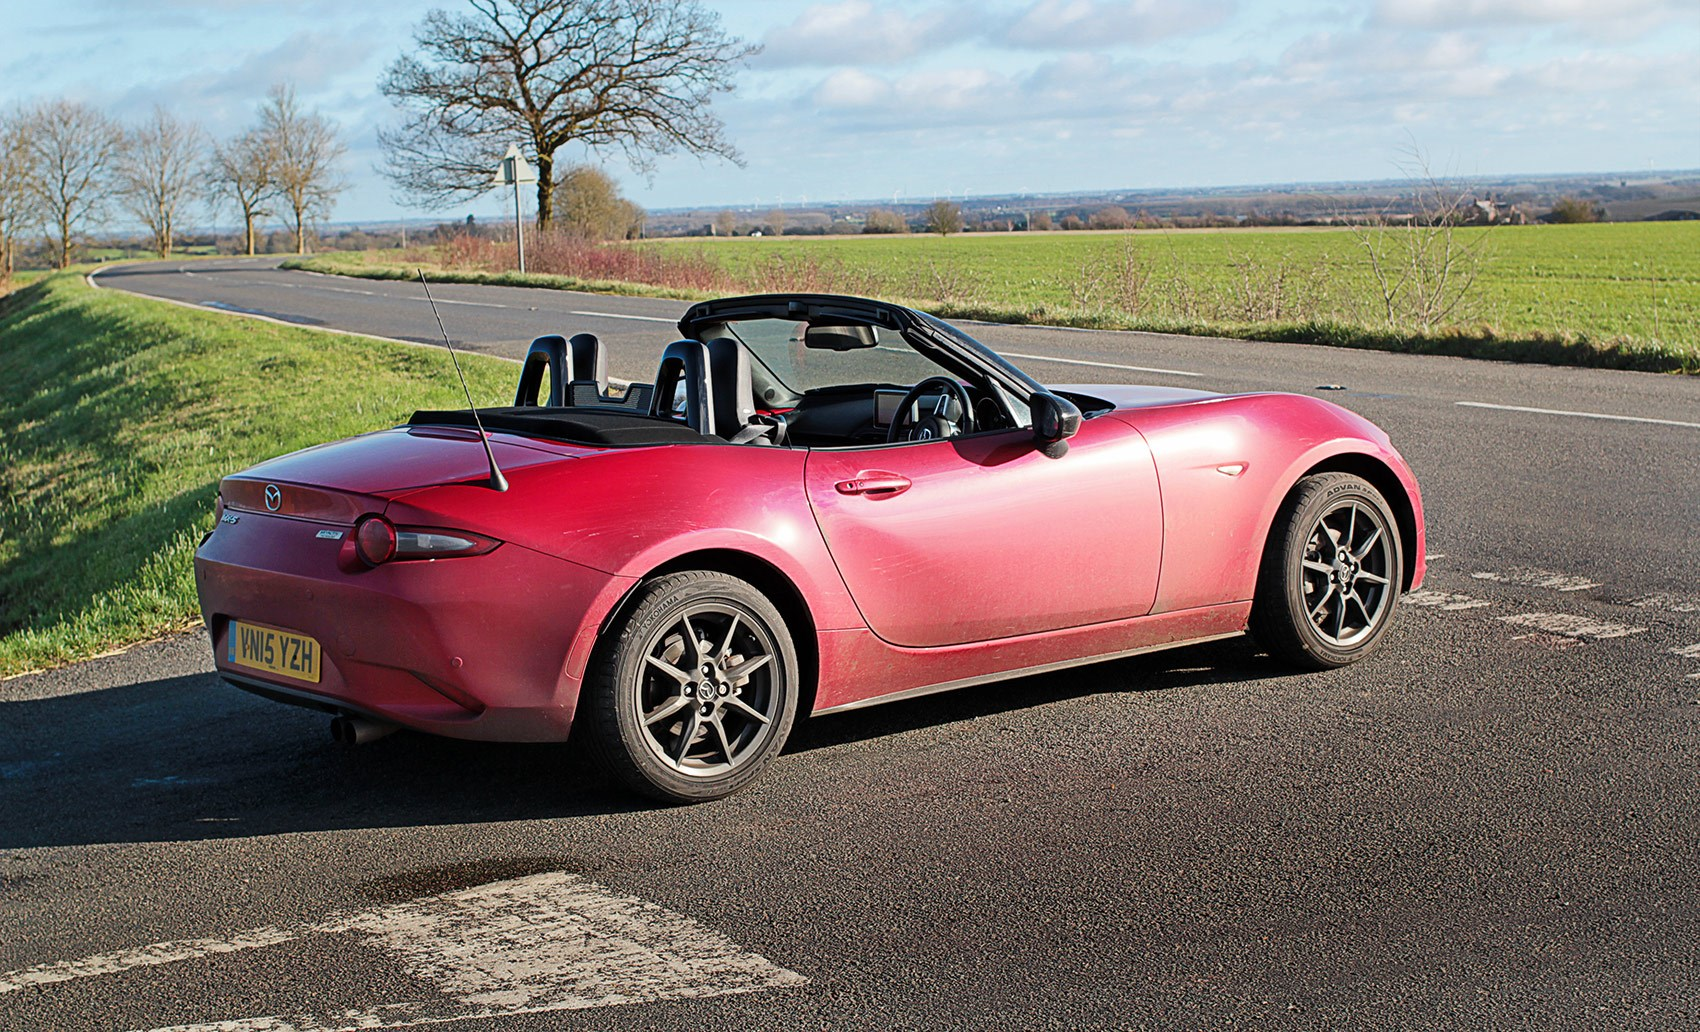 mpg crushed in country carnage our cars mazda mx 5 car april 2016 by car magazine. Black Bedroom Furniture Sets. Home Design Ideas